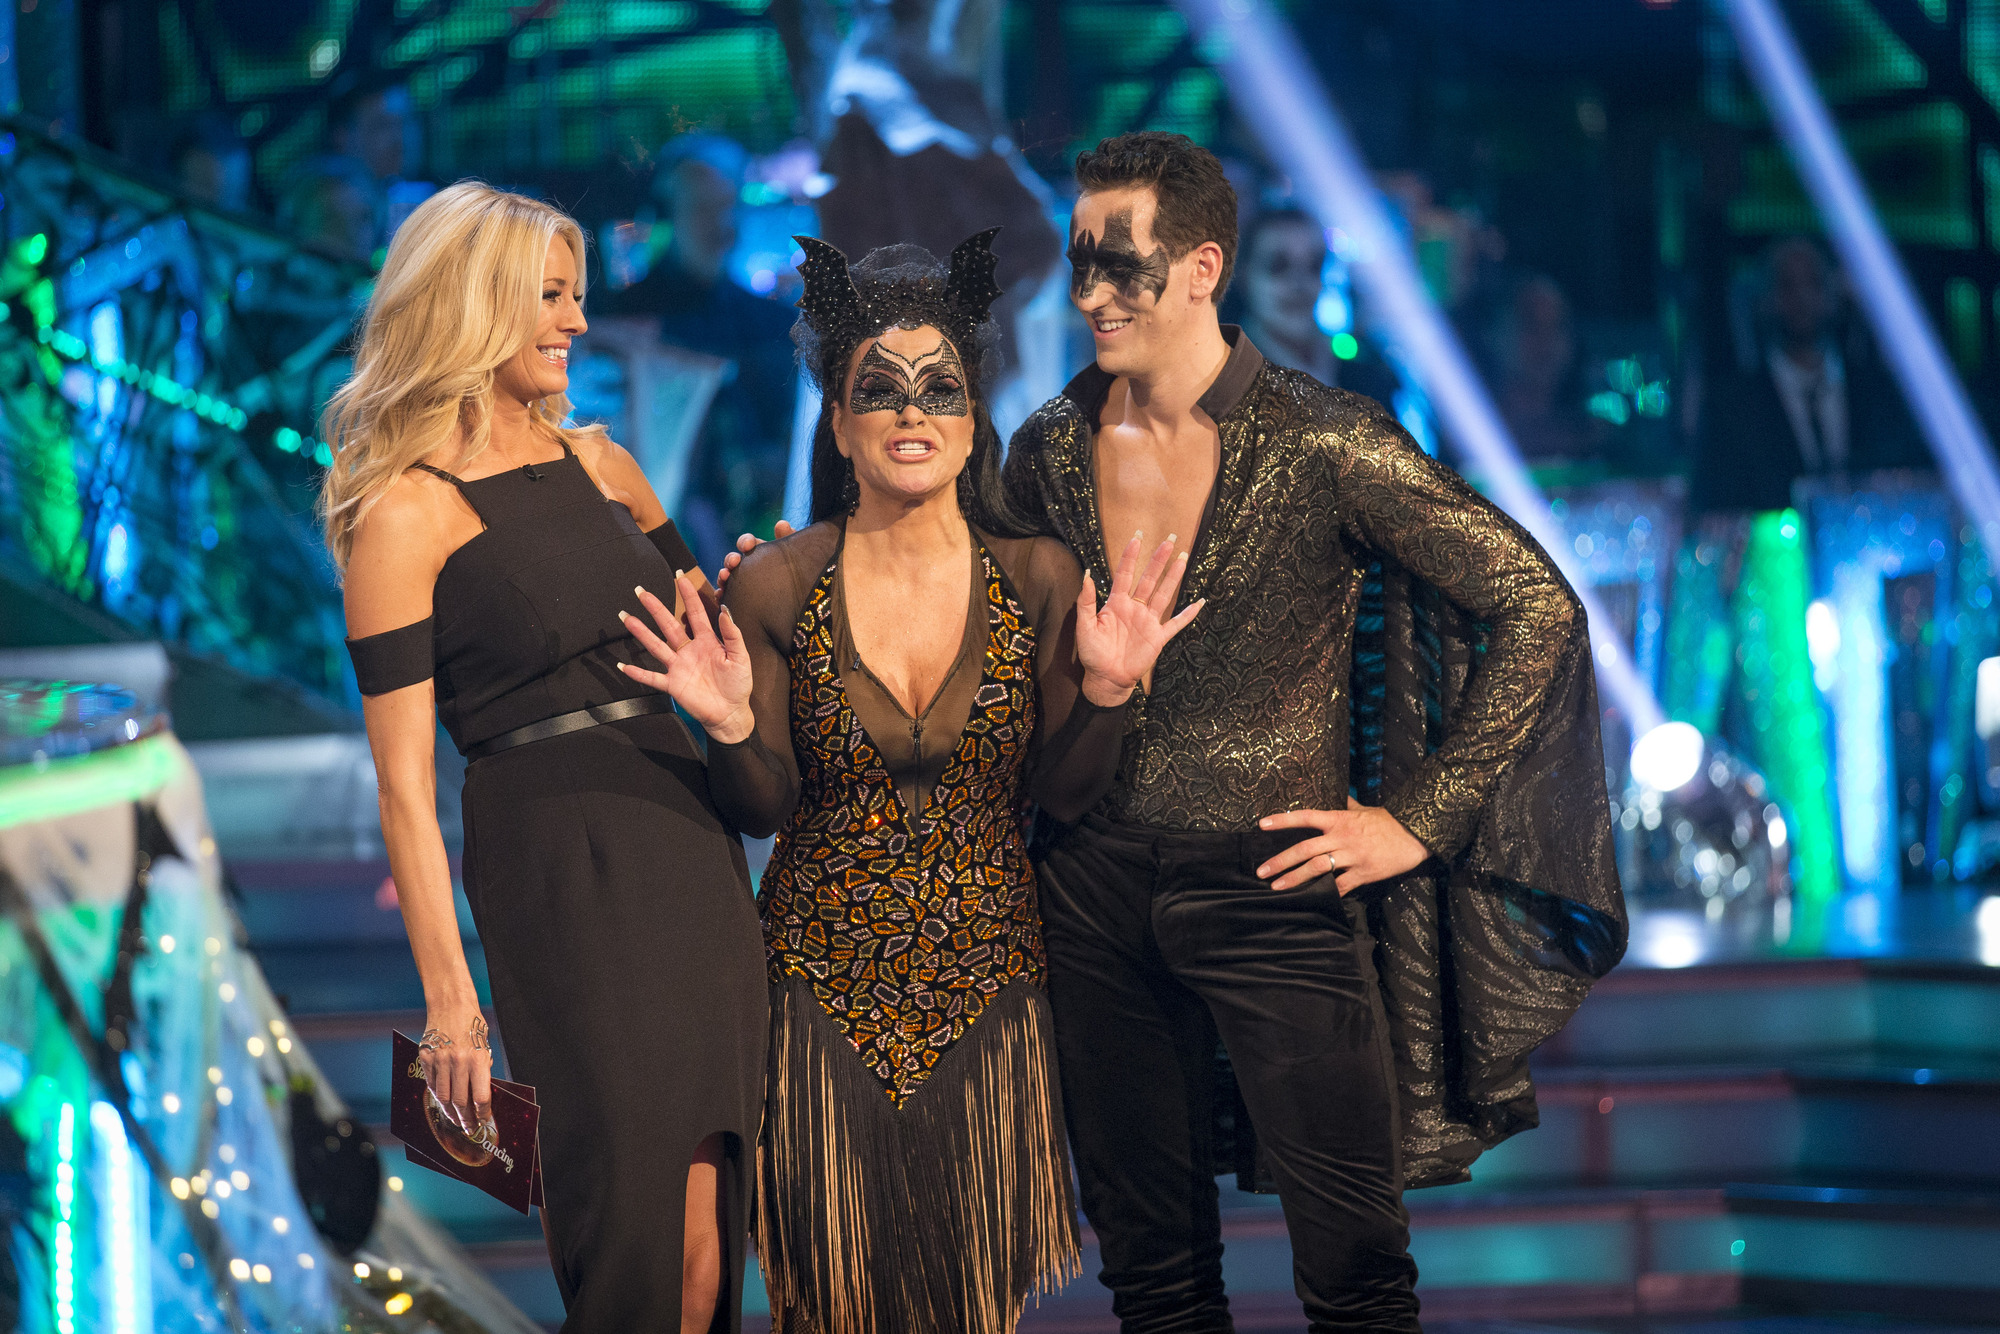 Anastacia gets emotional as she crashes out of Strictly Come Dancing after difficult series